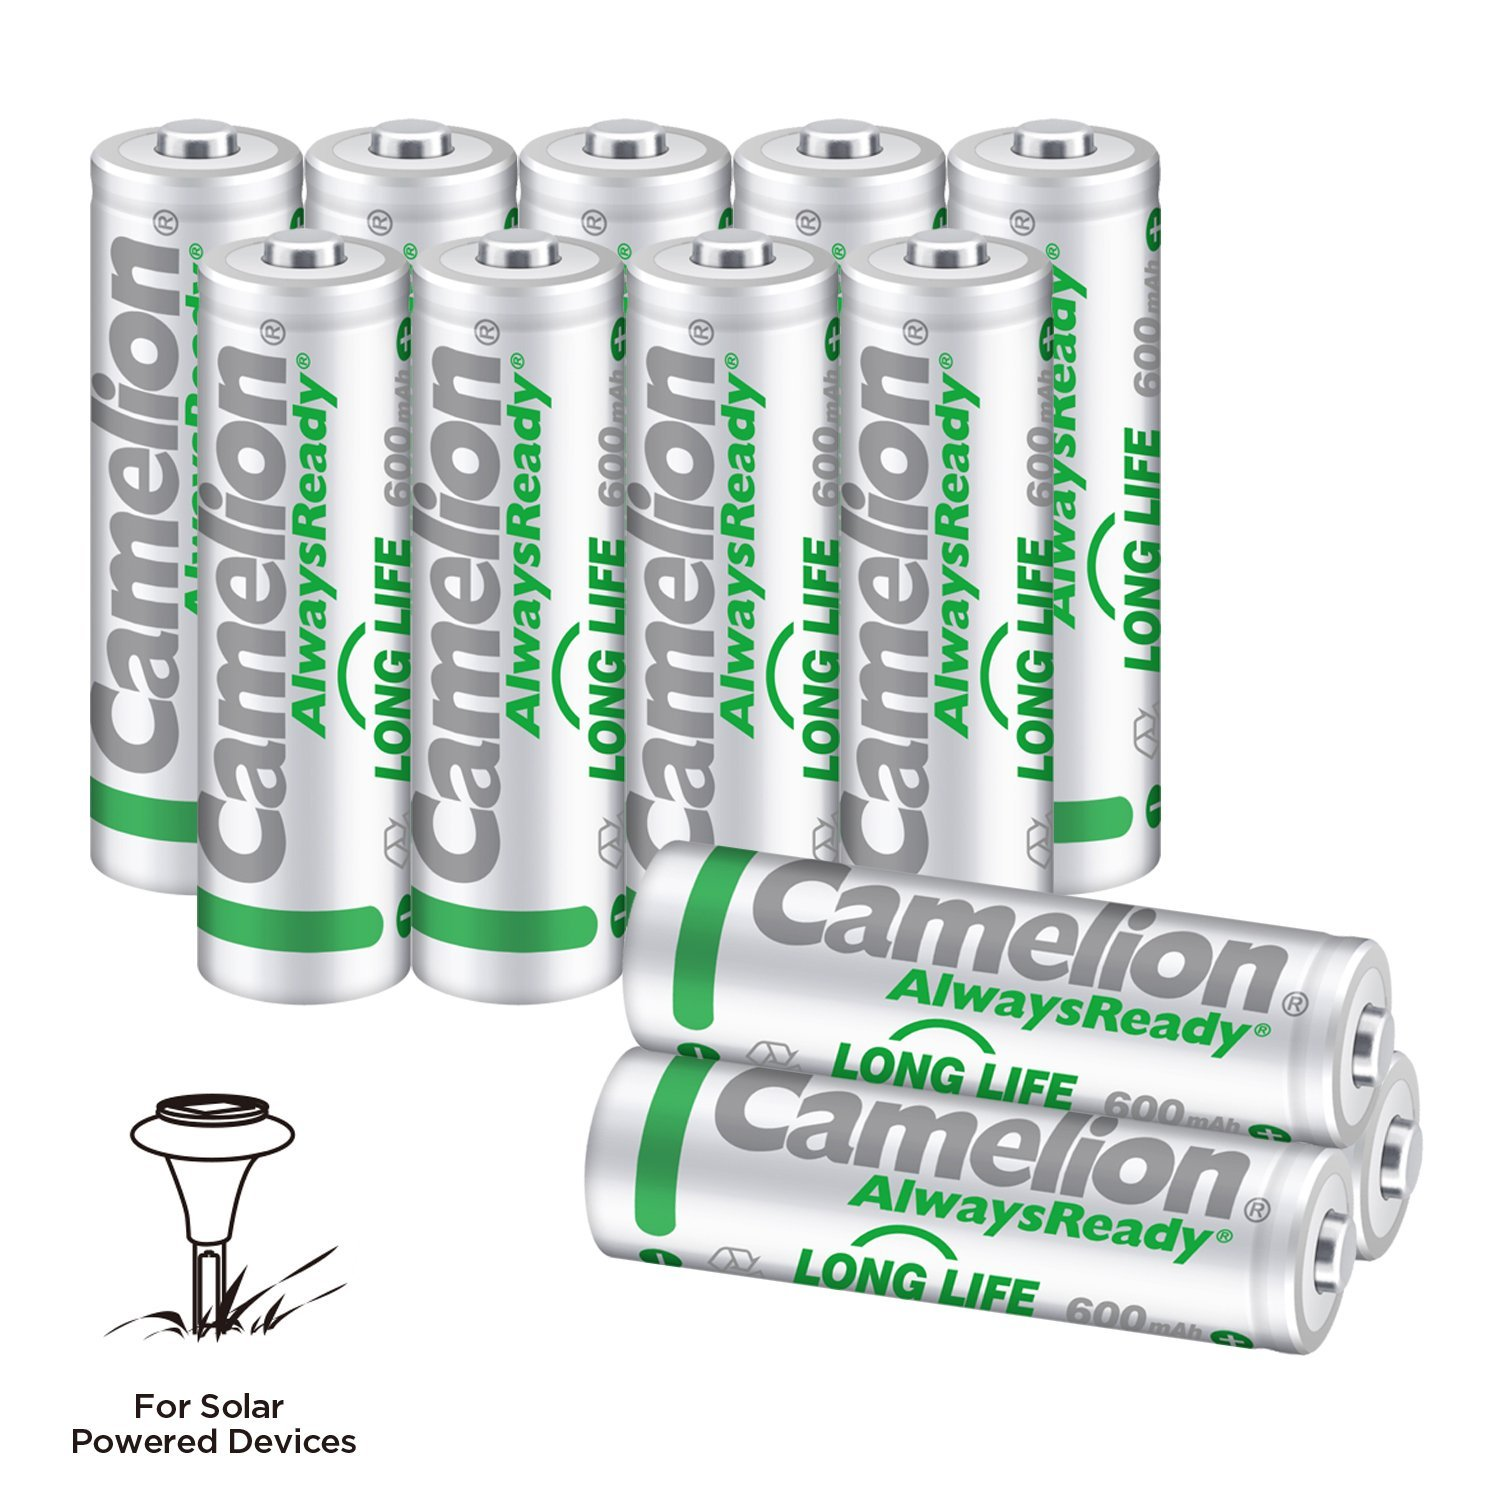 Camelion AA NH Solar rechargeable batteries 600mAh (12 counts) for solar powered devices, solar lawn light, solar light, solar lamp, lawn light, free battery storage box